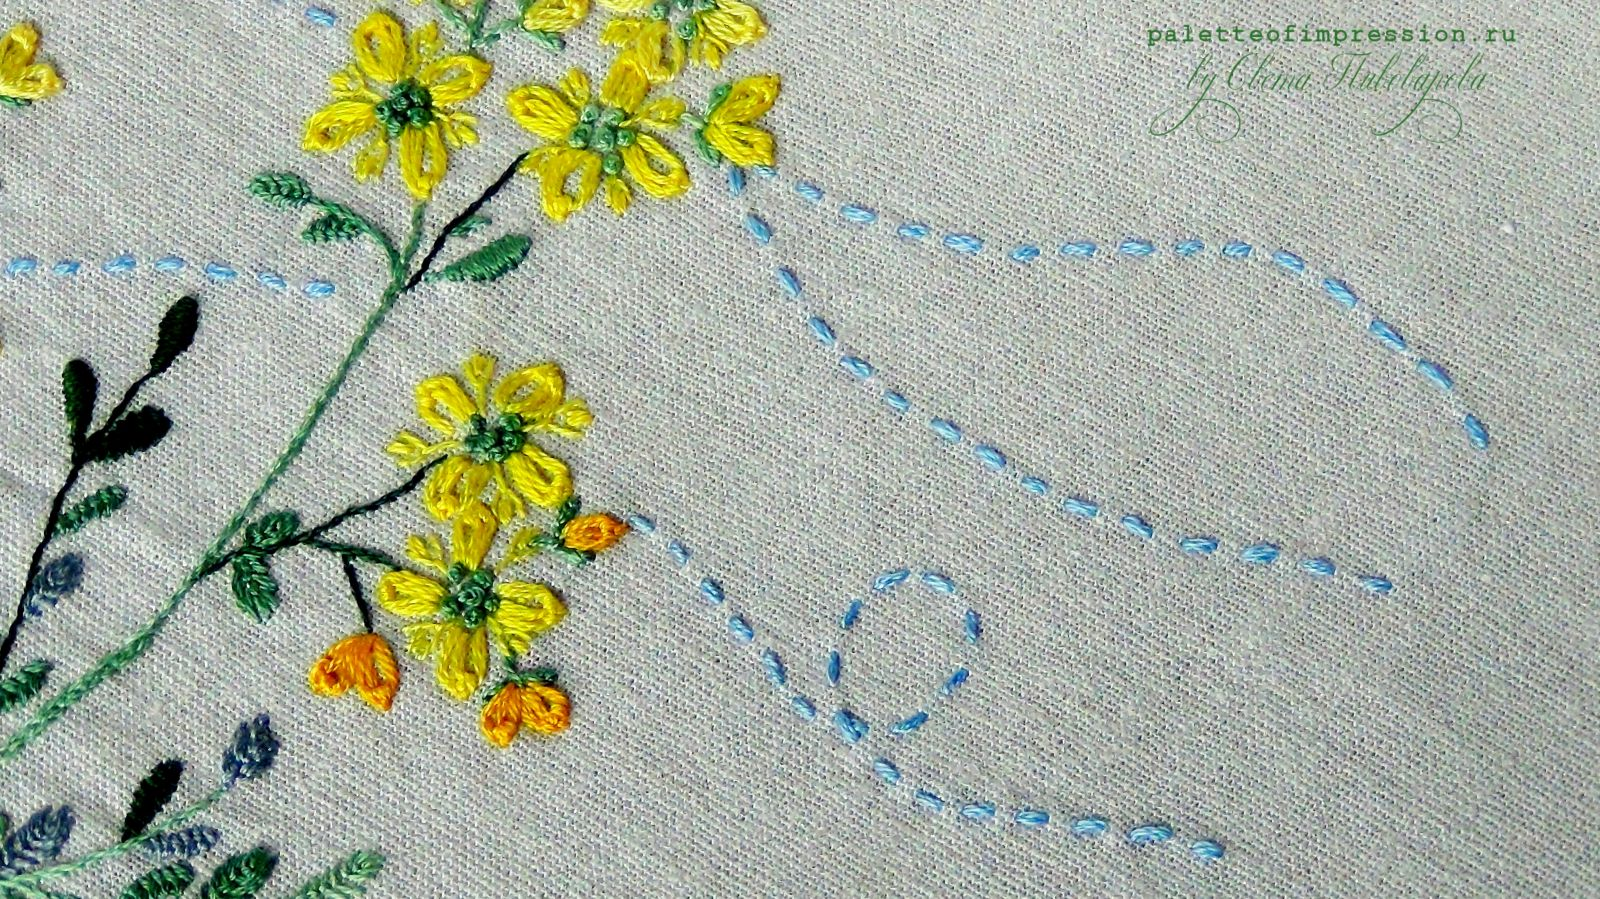 "Желтая рута. Sadako Toscuka ""Herb Embroider on Linen 1"". Блог Вся палитра впечатлений"